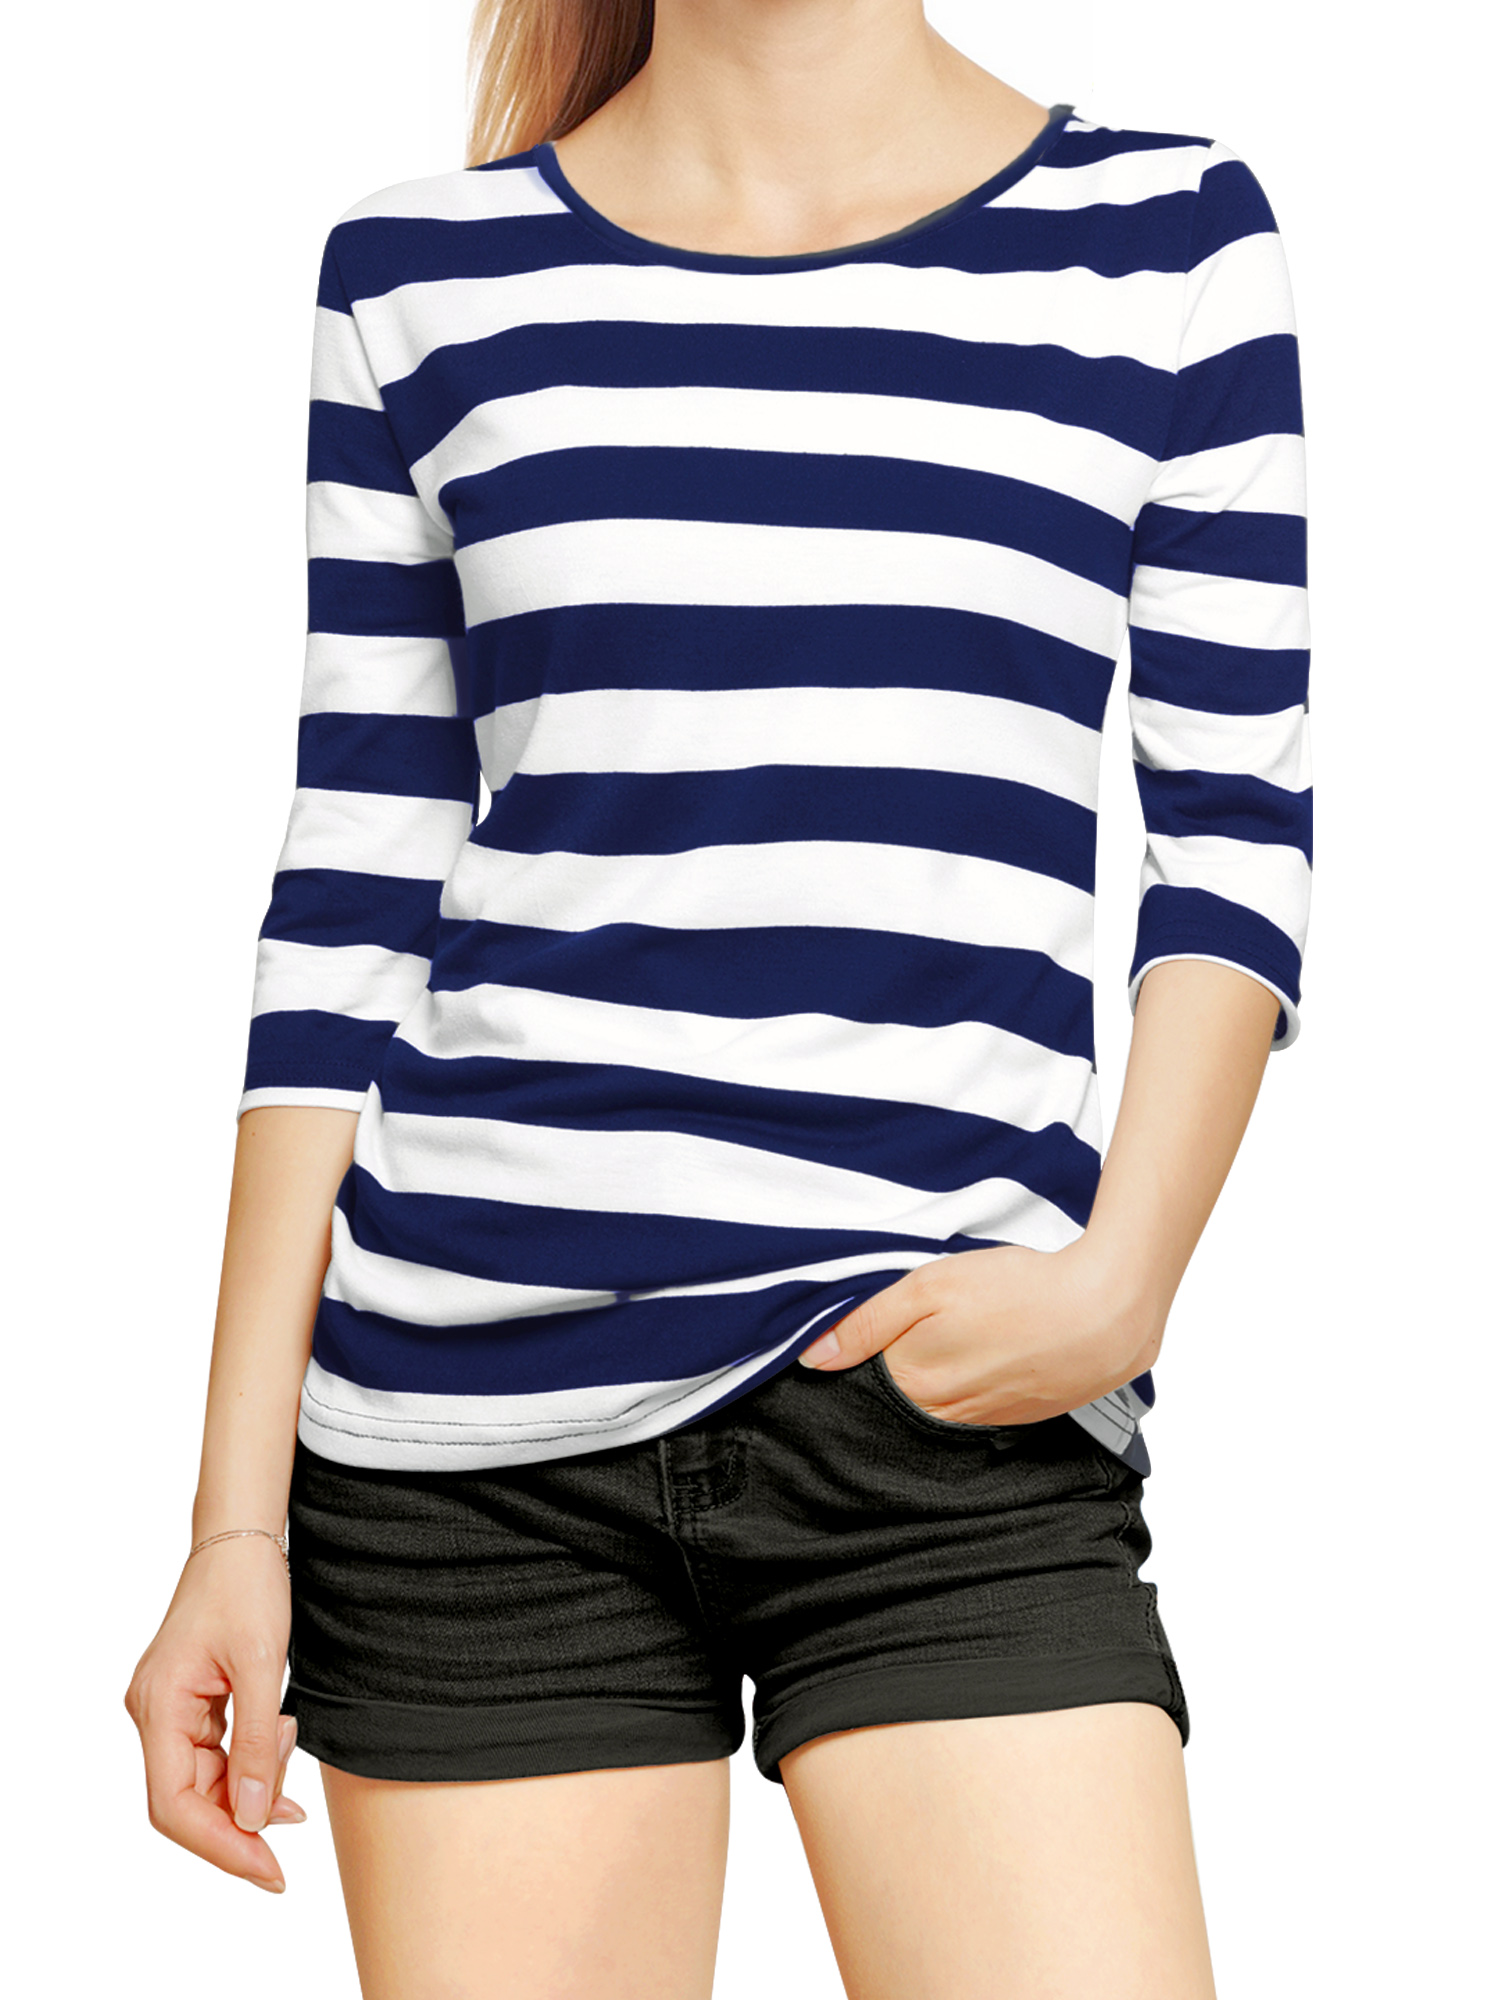 Women Elbow Sleeves Boat Neck Stripe Pattern T-Shirt Dark Blue White S